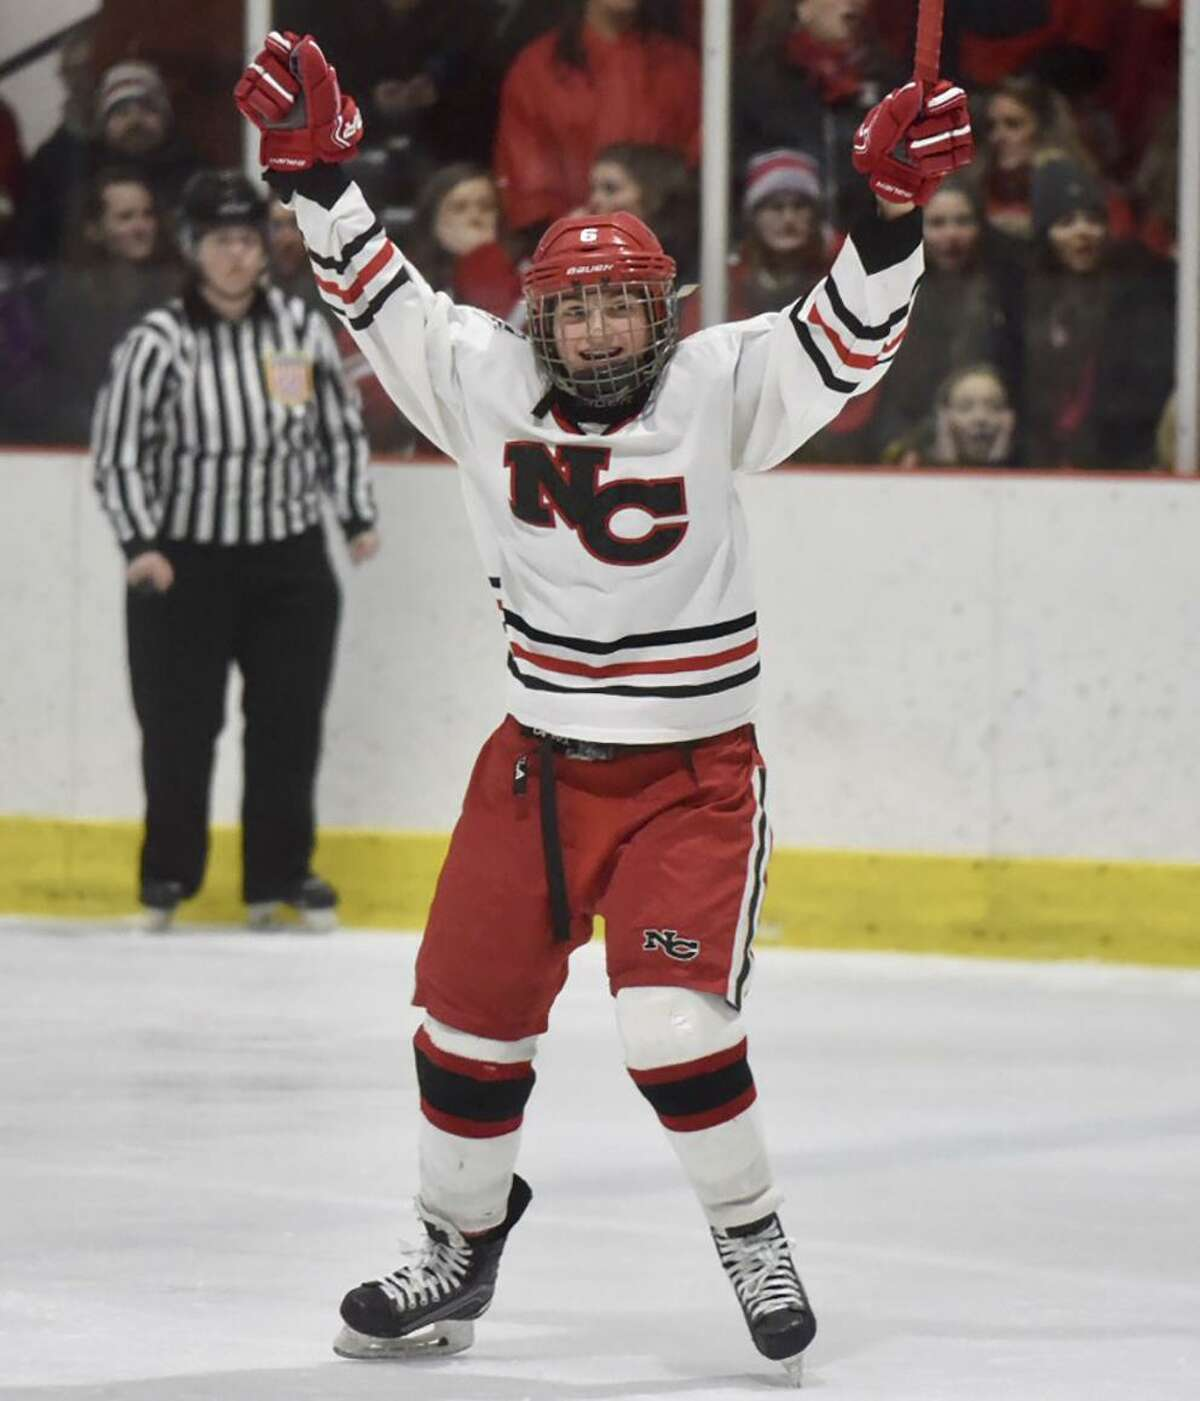 New Canaan freshman Kaleigh Harden celebrates after assisting on Anika Curri's goal in the first period of the FCIAC girls hockey final at the Darien Ice House on Saturday, Feb. 23.